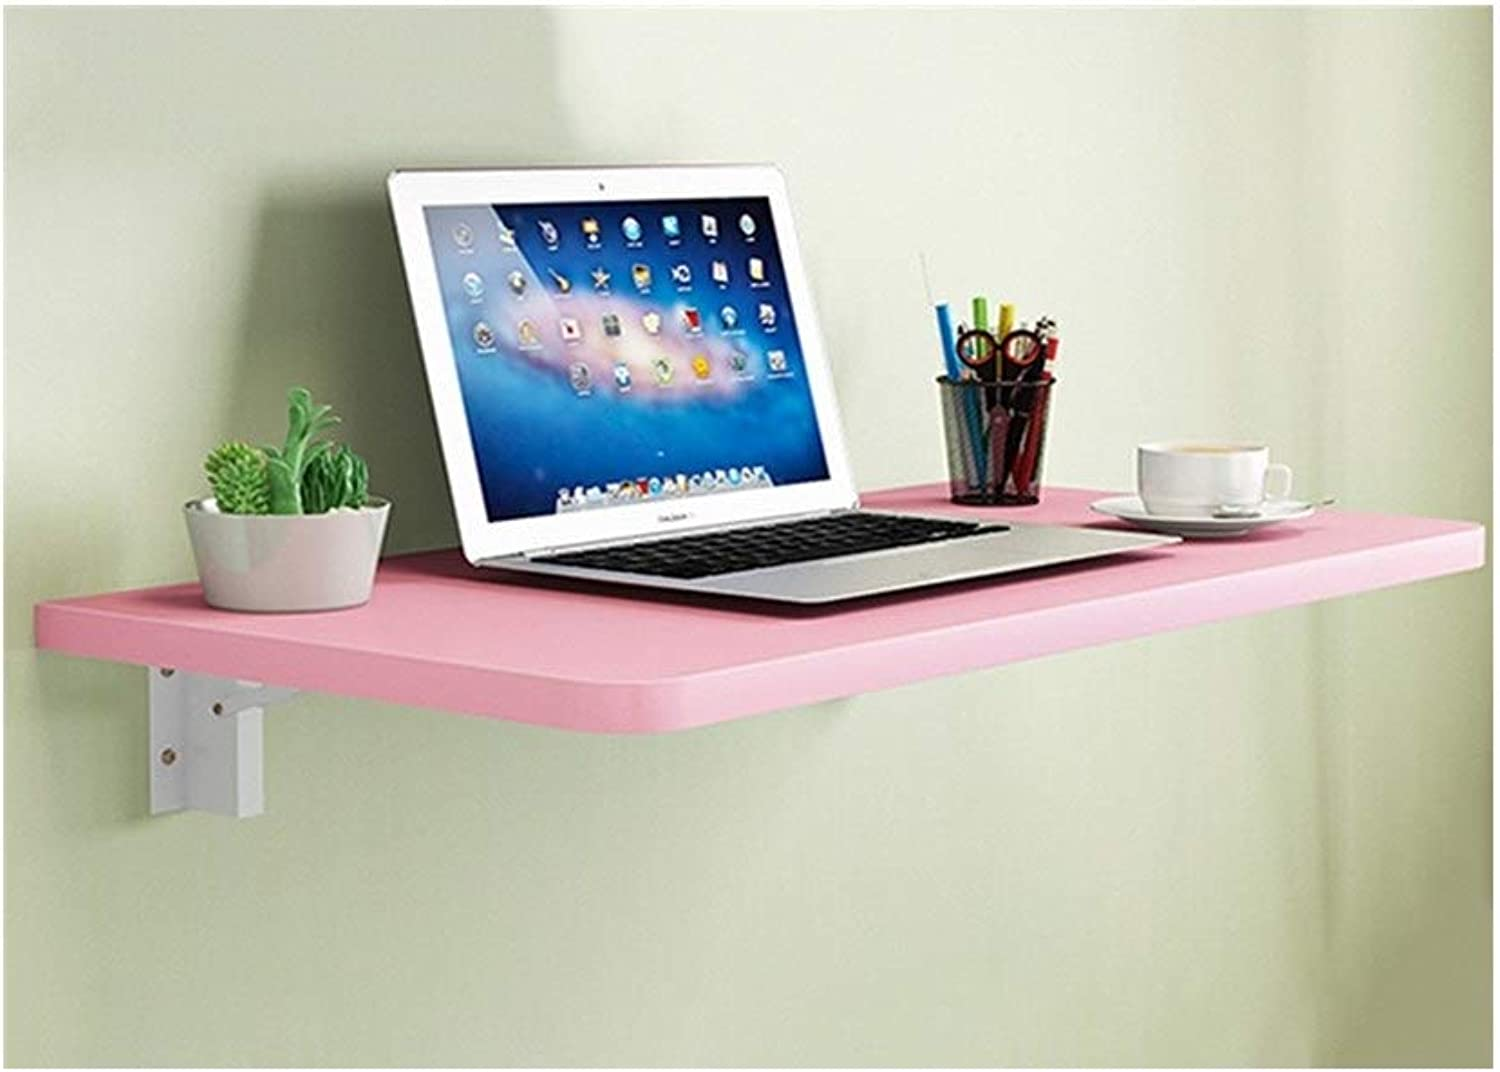 LQQGXLPortable Folding Table Wall-Mounted Computer Desk, Folding Dining Table, Multi-Functional Desk, Wall Desk, (color   A, Size   8030cm)